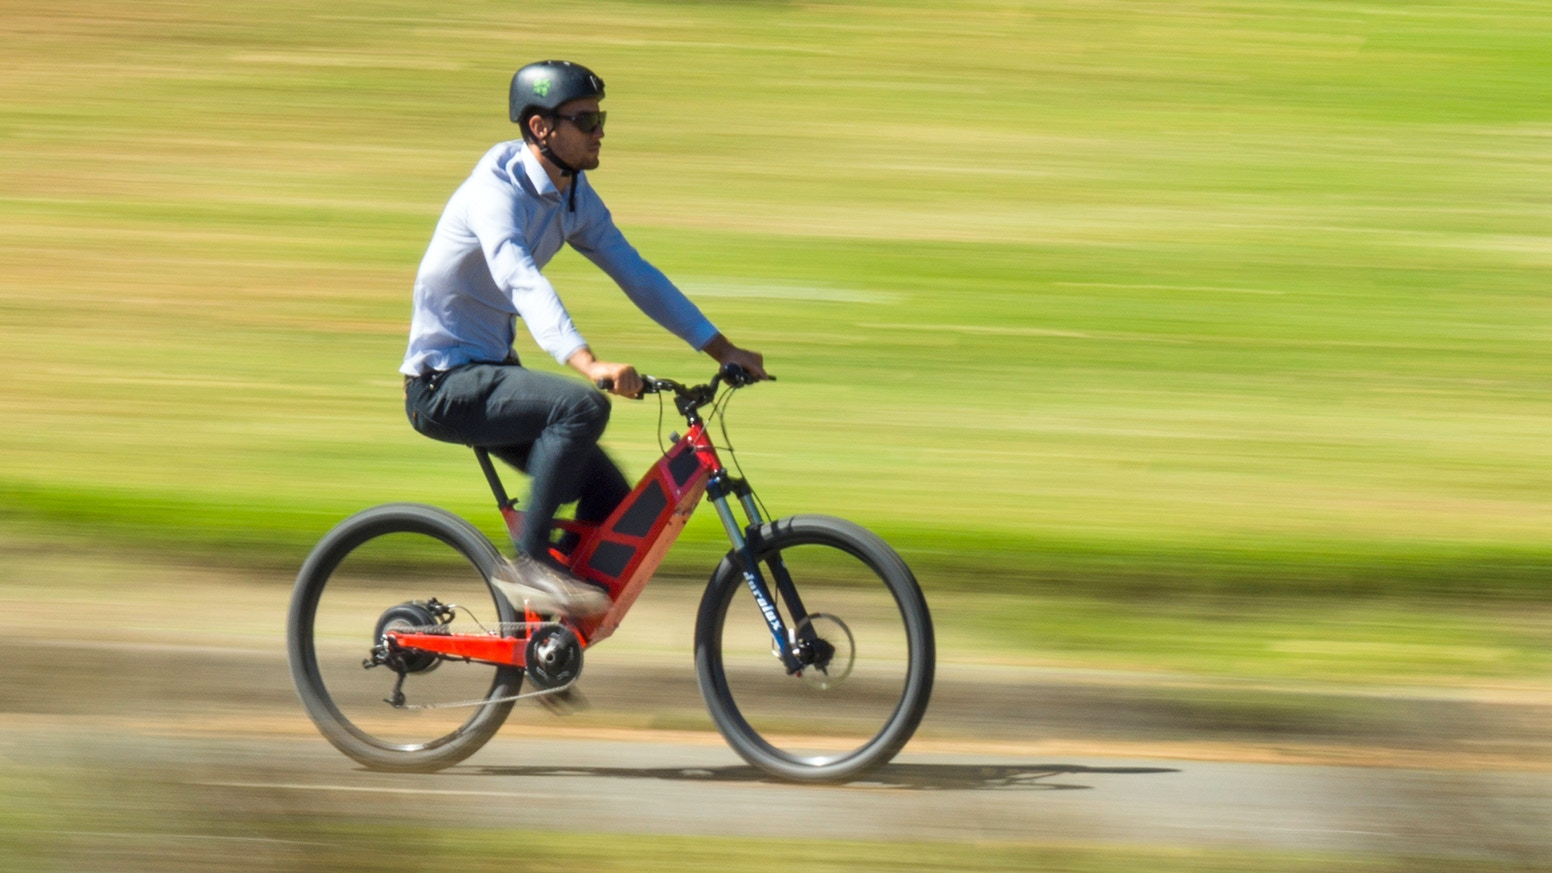 After years of customer feedback, we've come up with the formula for the most versatile commuter ebike in its class. Our campaign is over, but it's not too late to get a Stealth P-7. Visit our website to find out more.